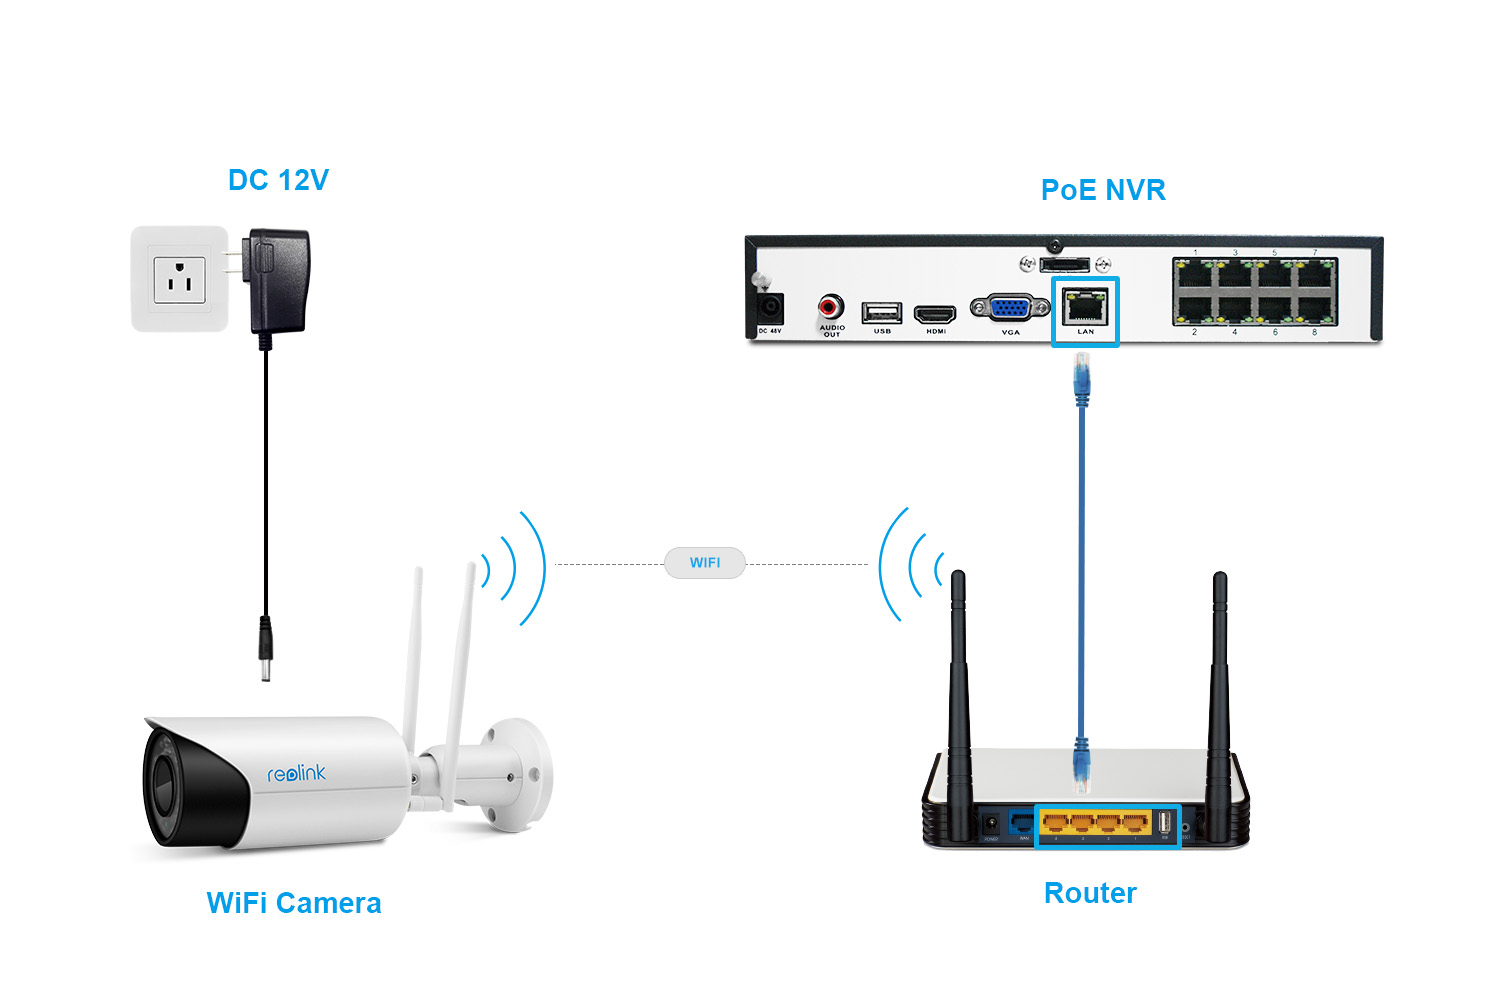 Wi-Fi Camera to PoE NVR